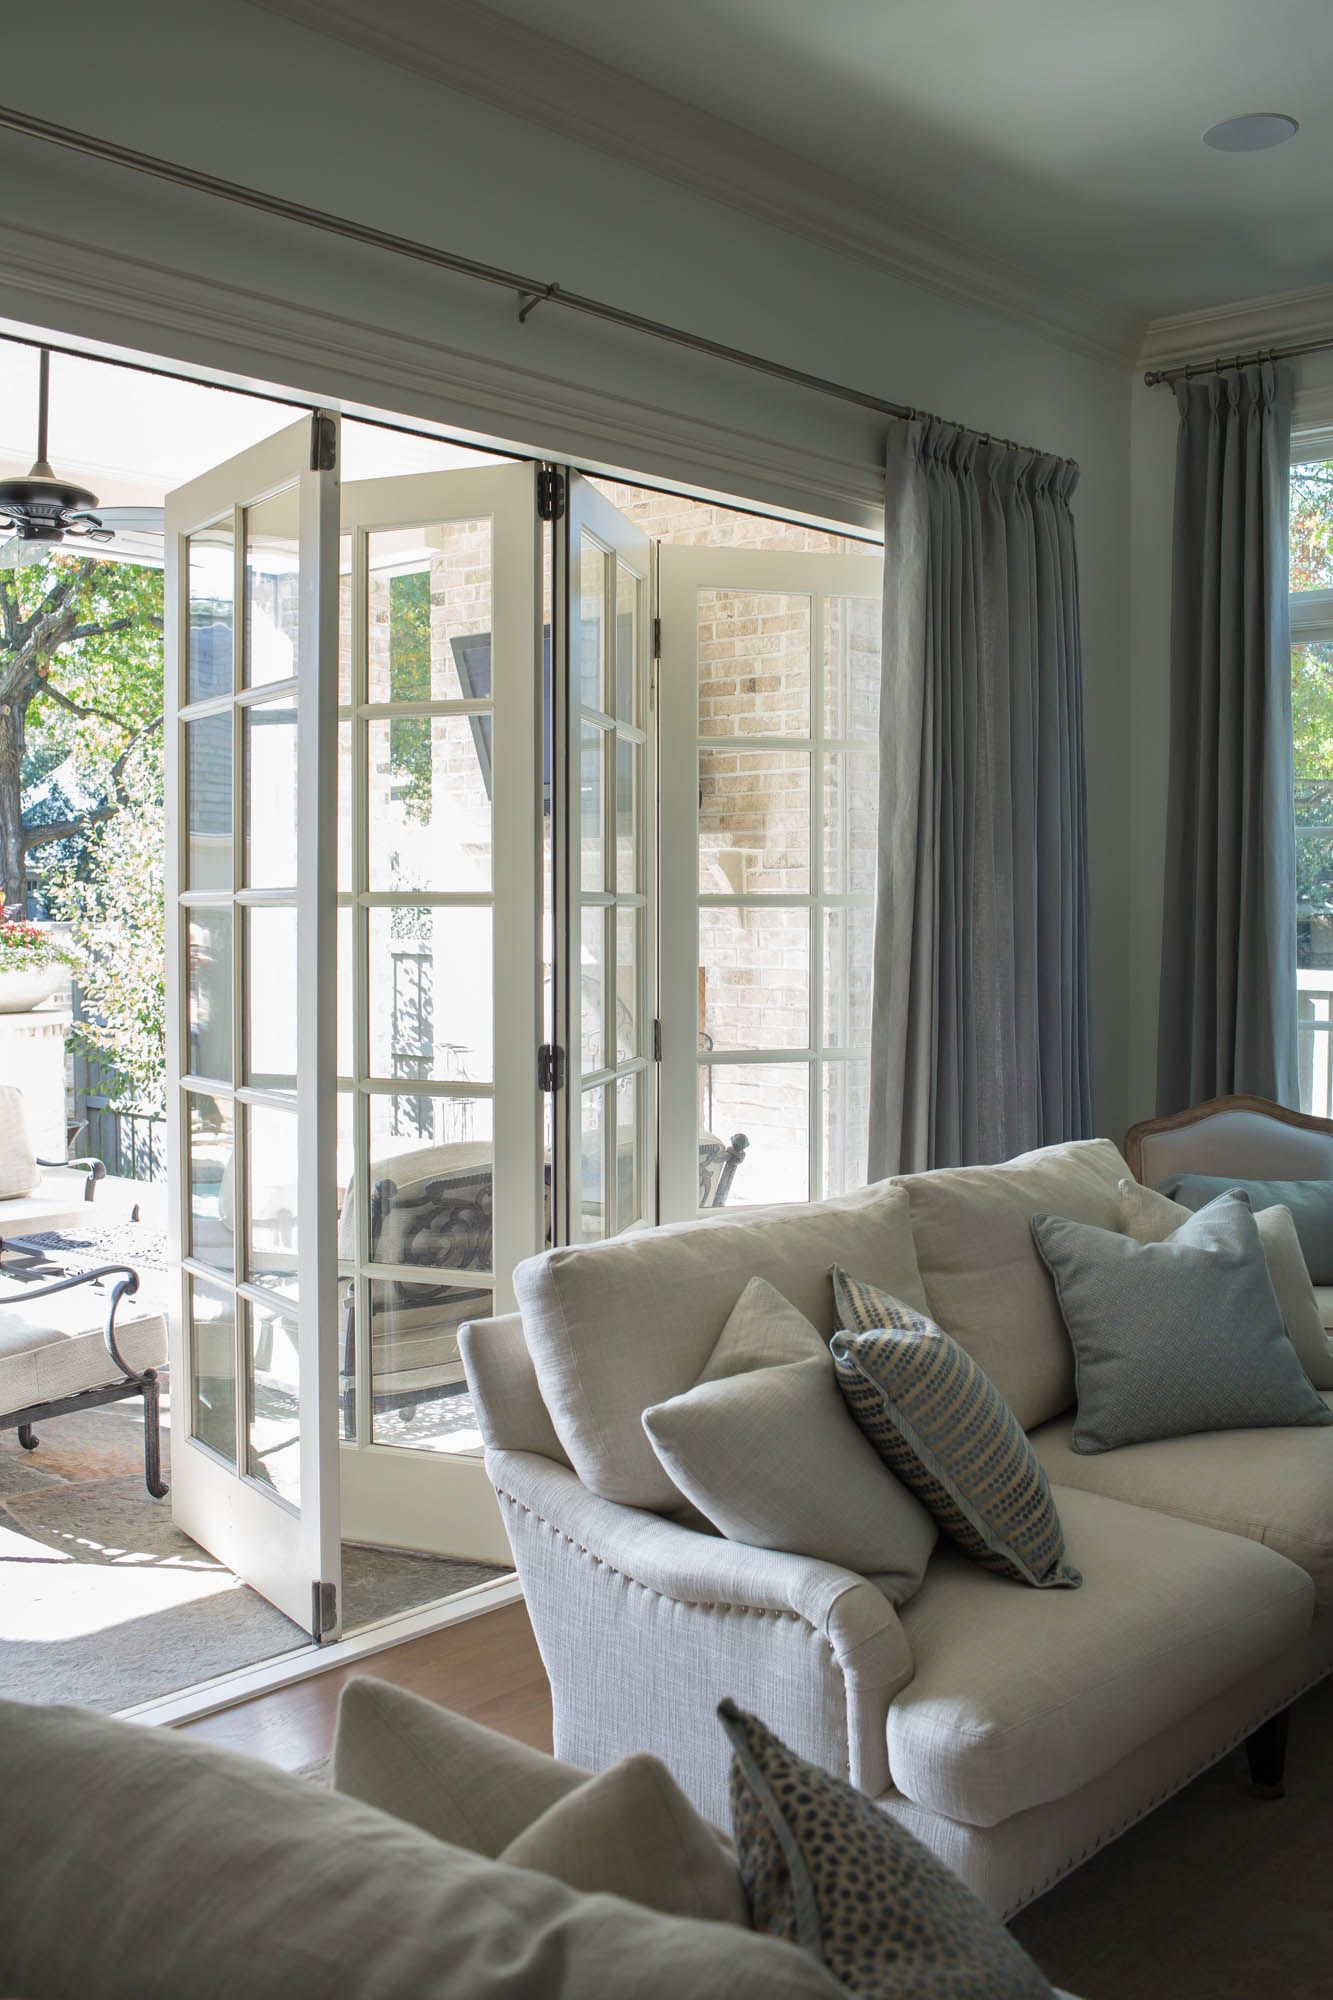 Bifold French Doors Home Design Ideas Pictures Remodel: Accordion Doors In Family Room Leading Out To The Patio